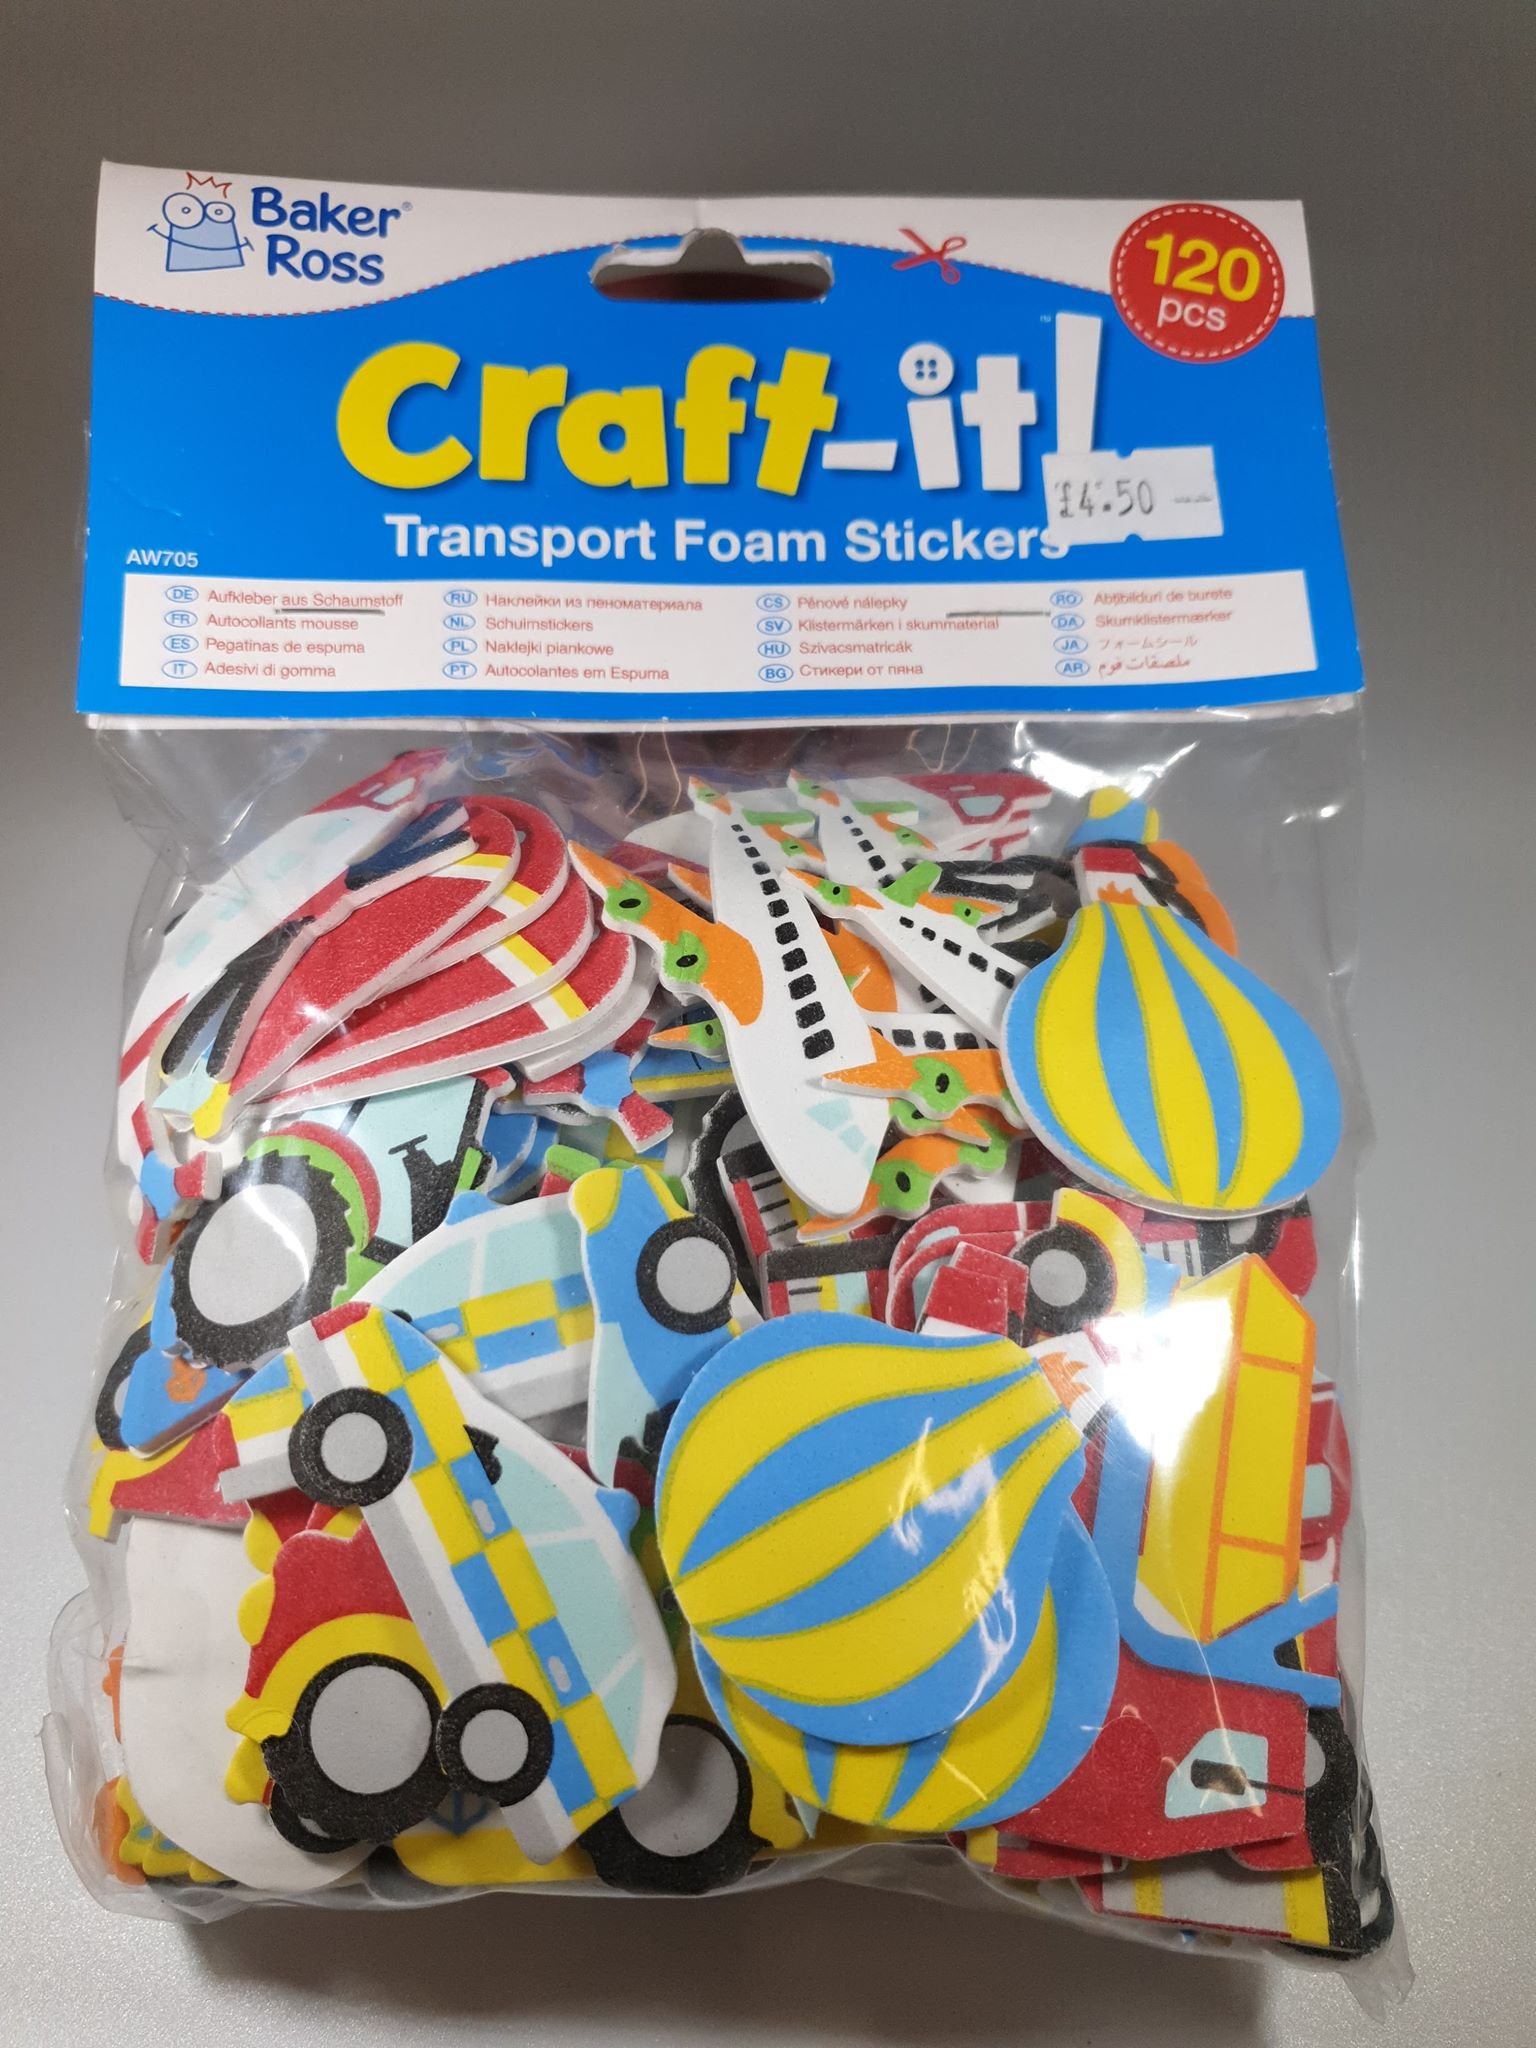 Transport Foam Stickers